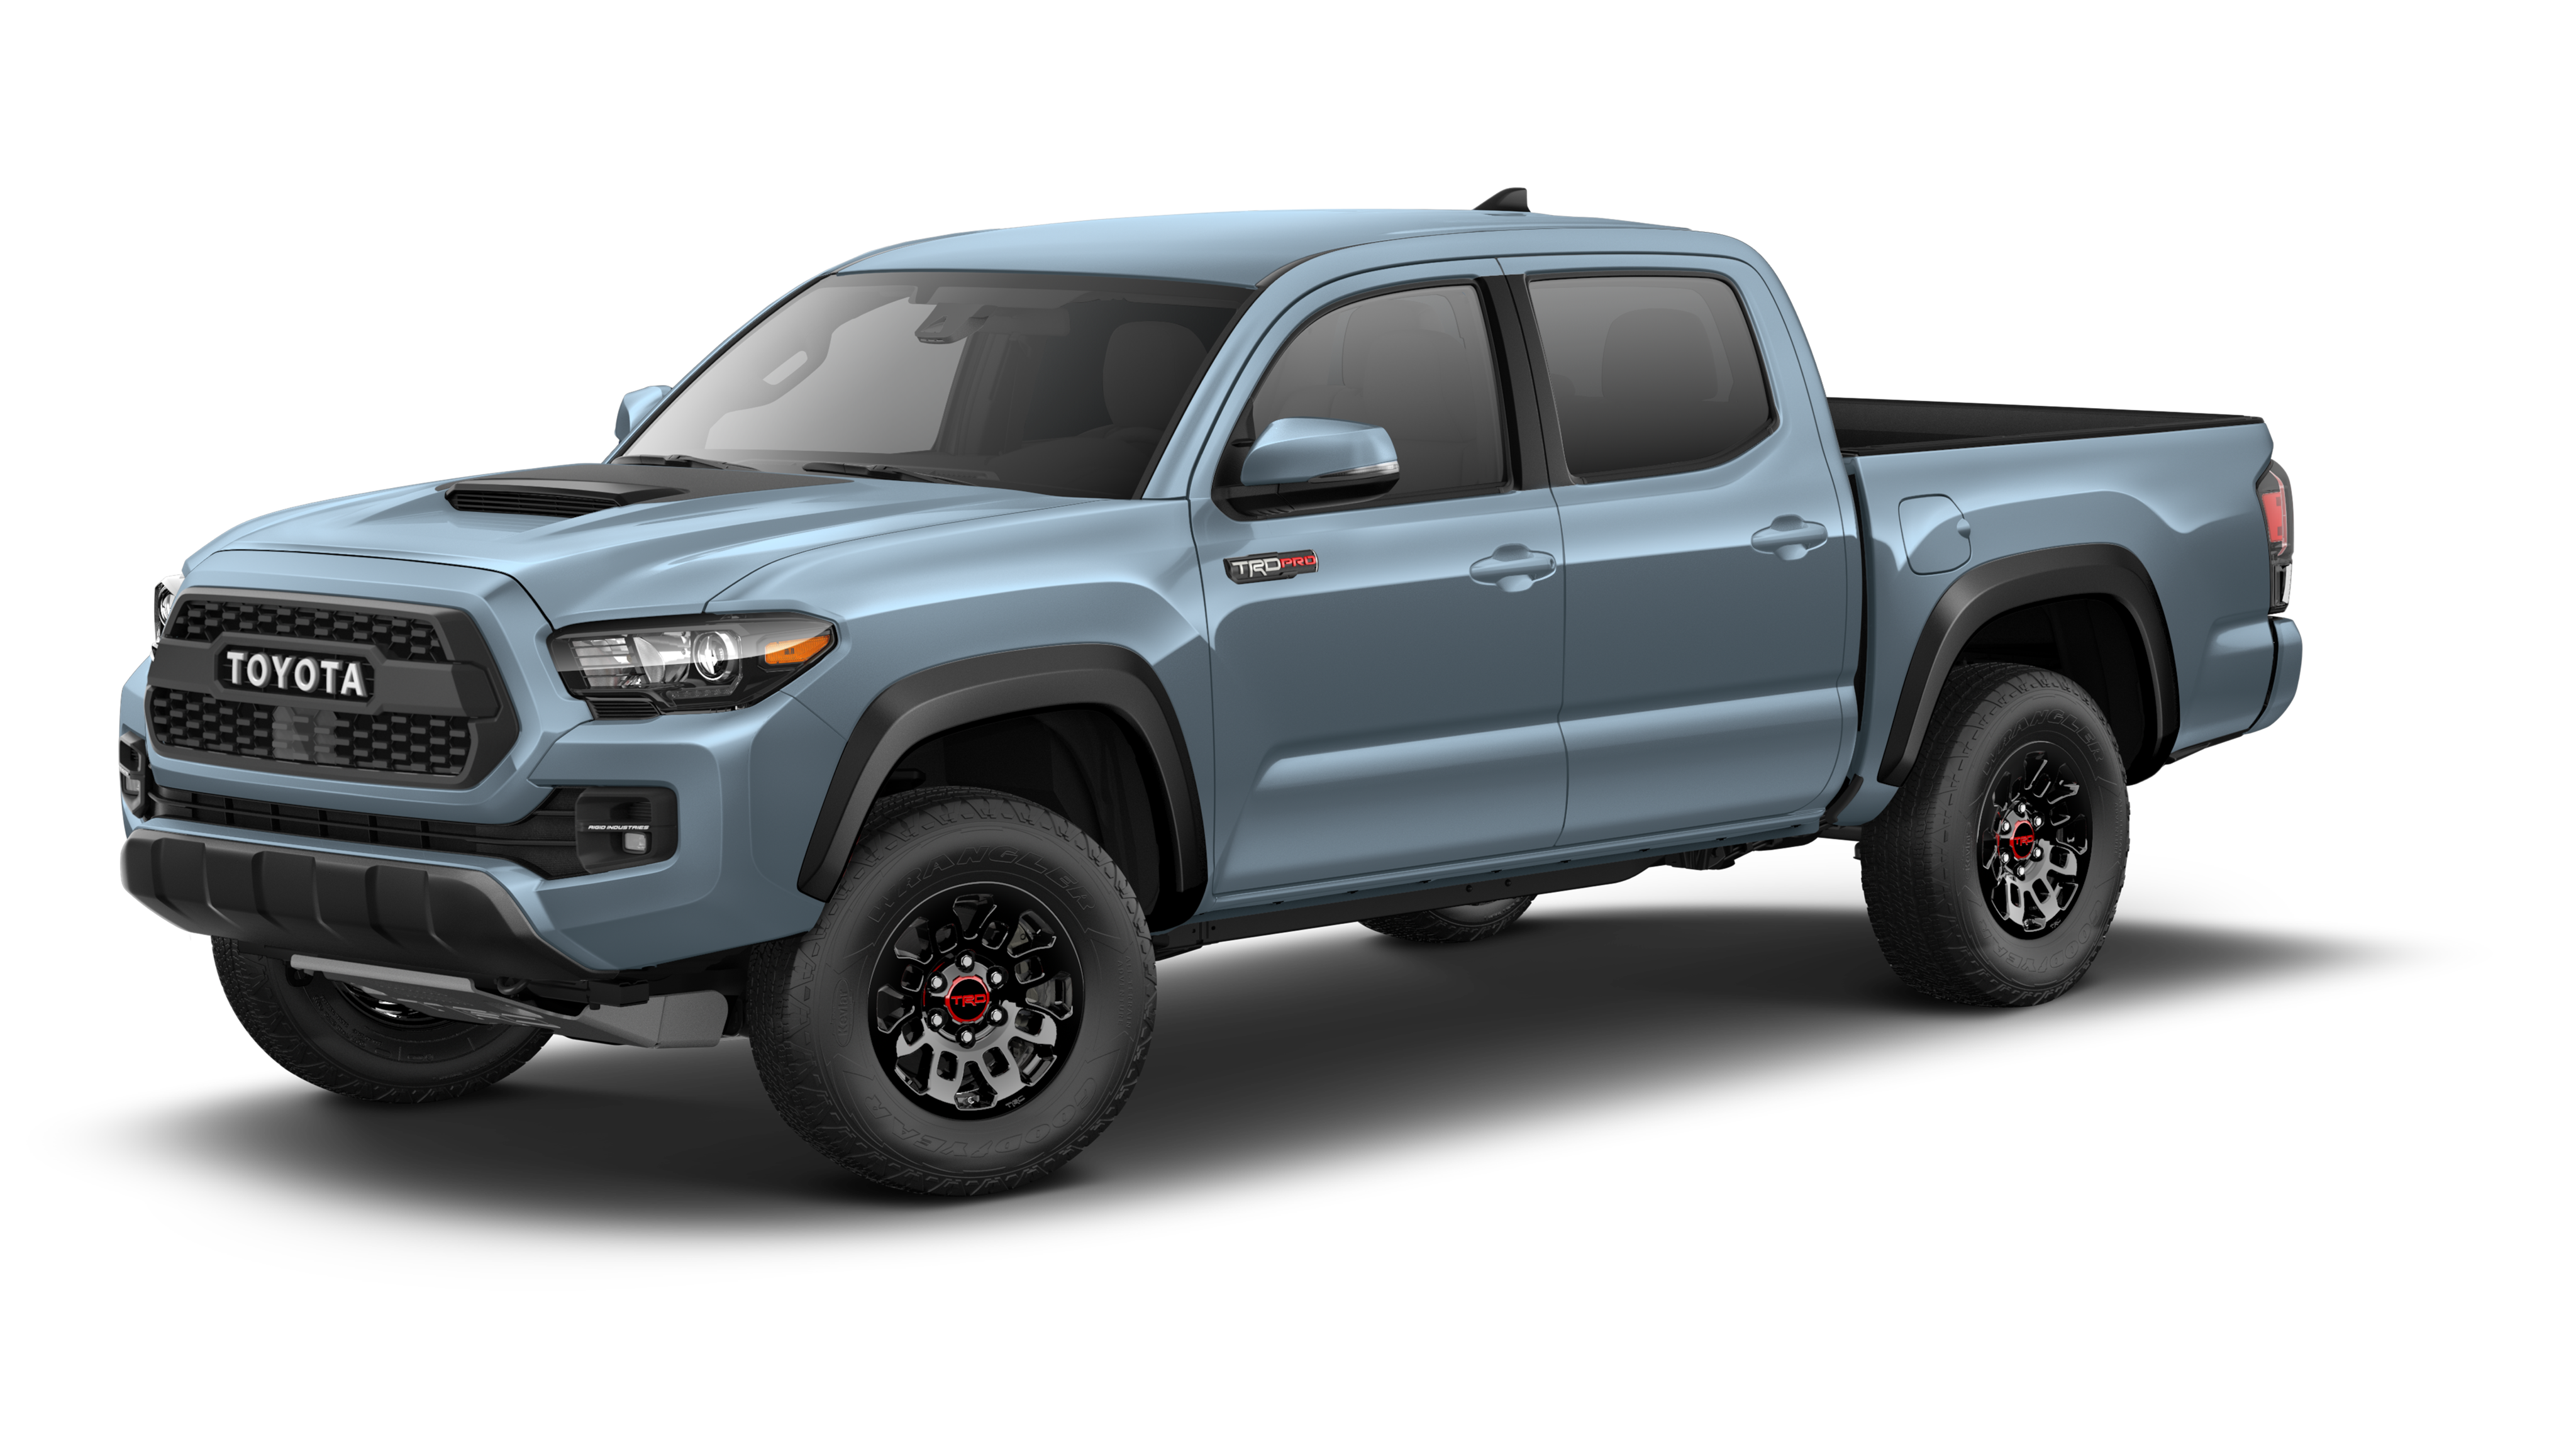 Review of 2018 Toyota Tacoma Here at Larry H Miller Toyota Lemon Grove near San Diego